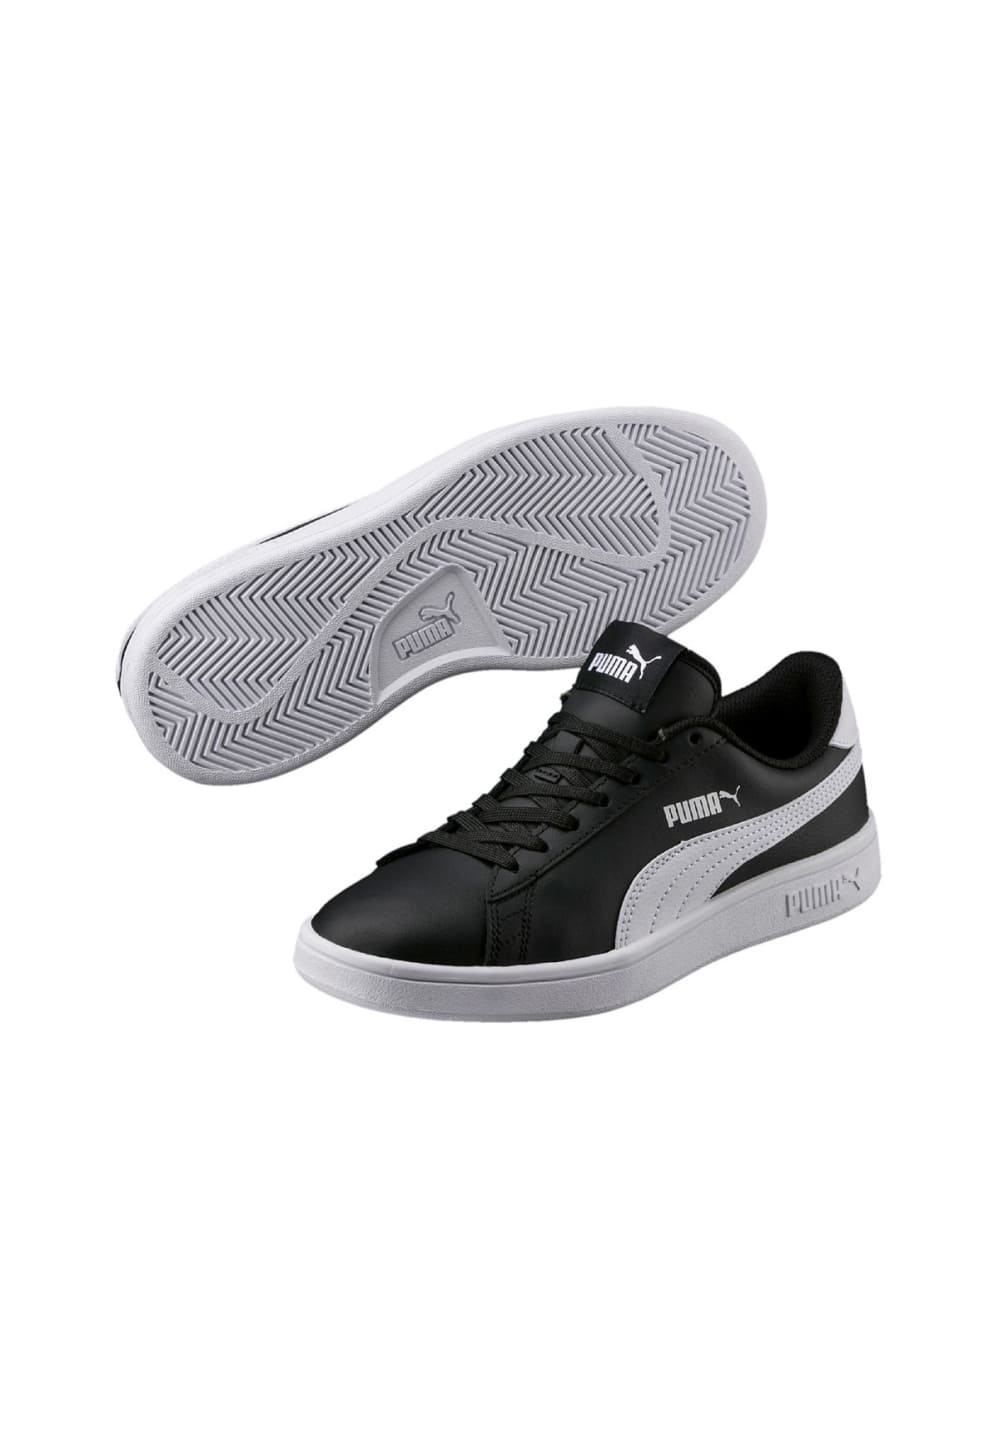 L Noir Jr Baskets Puma V2 Smash vmnOw80N